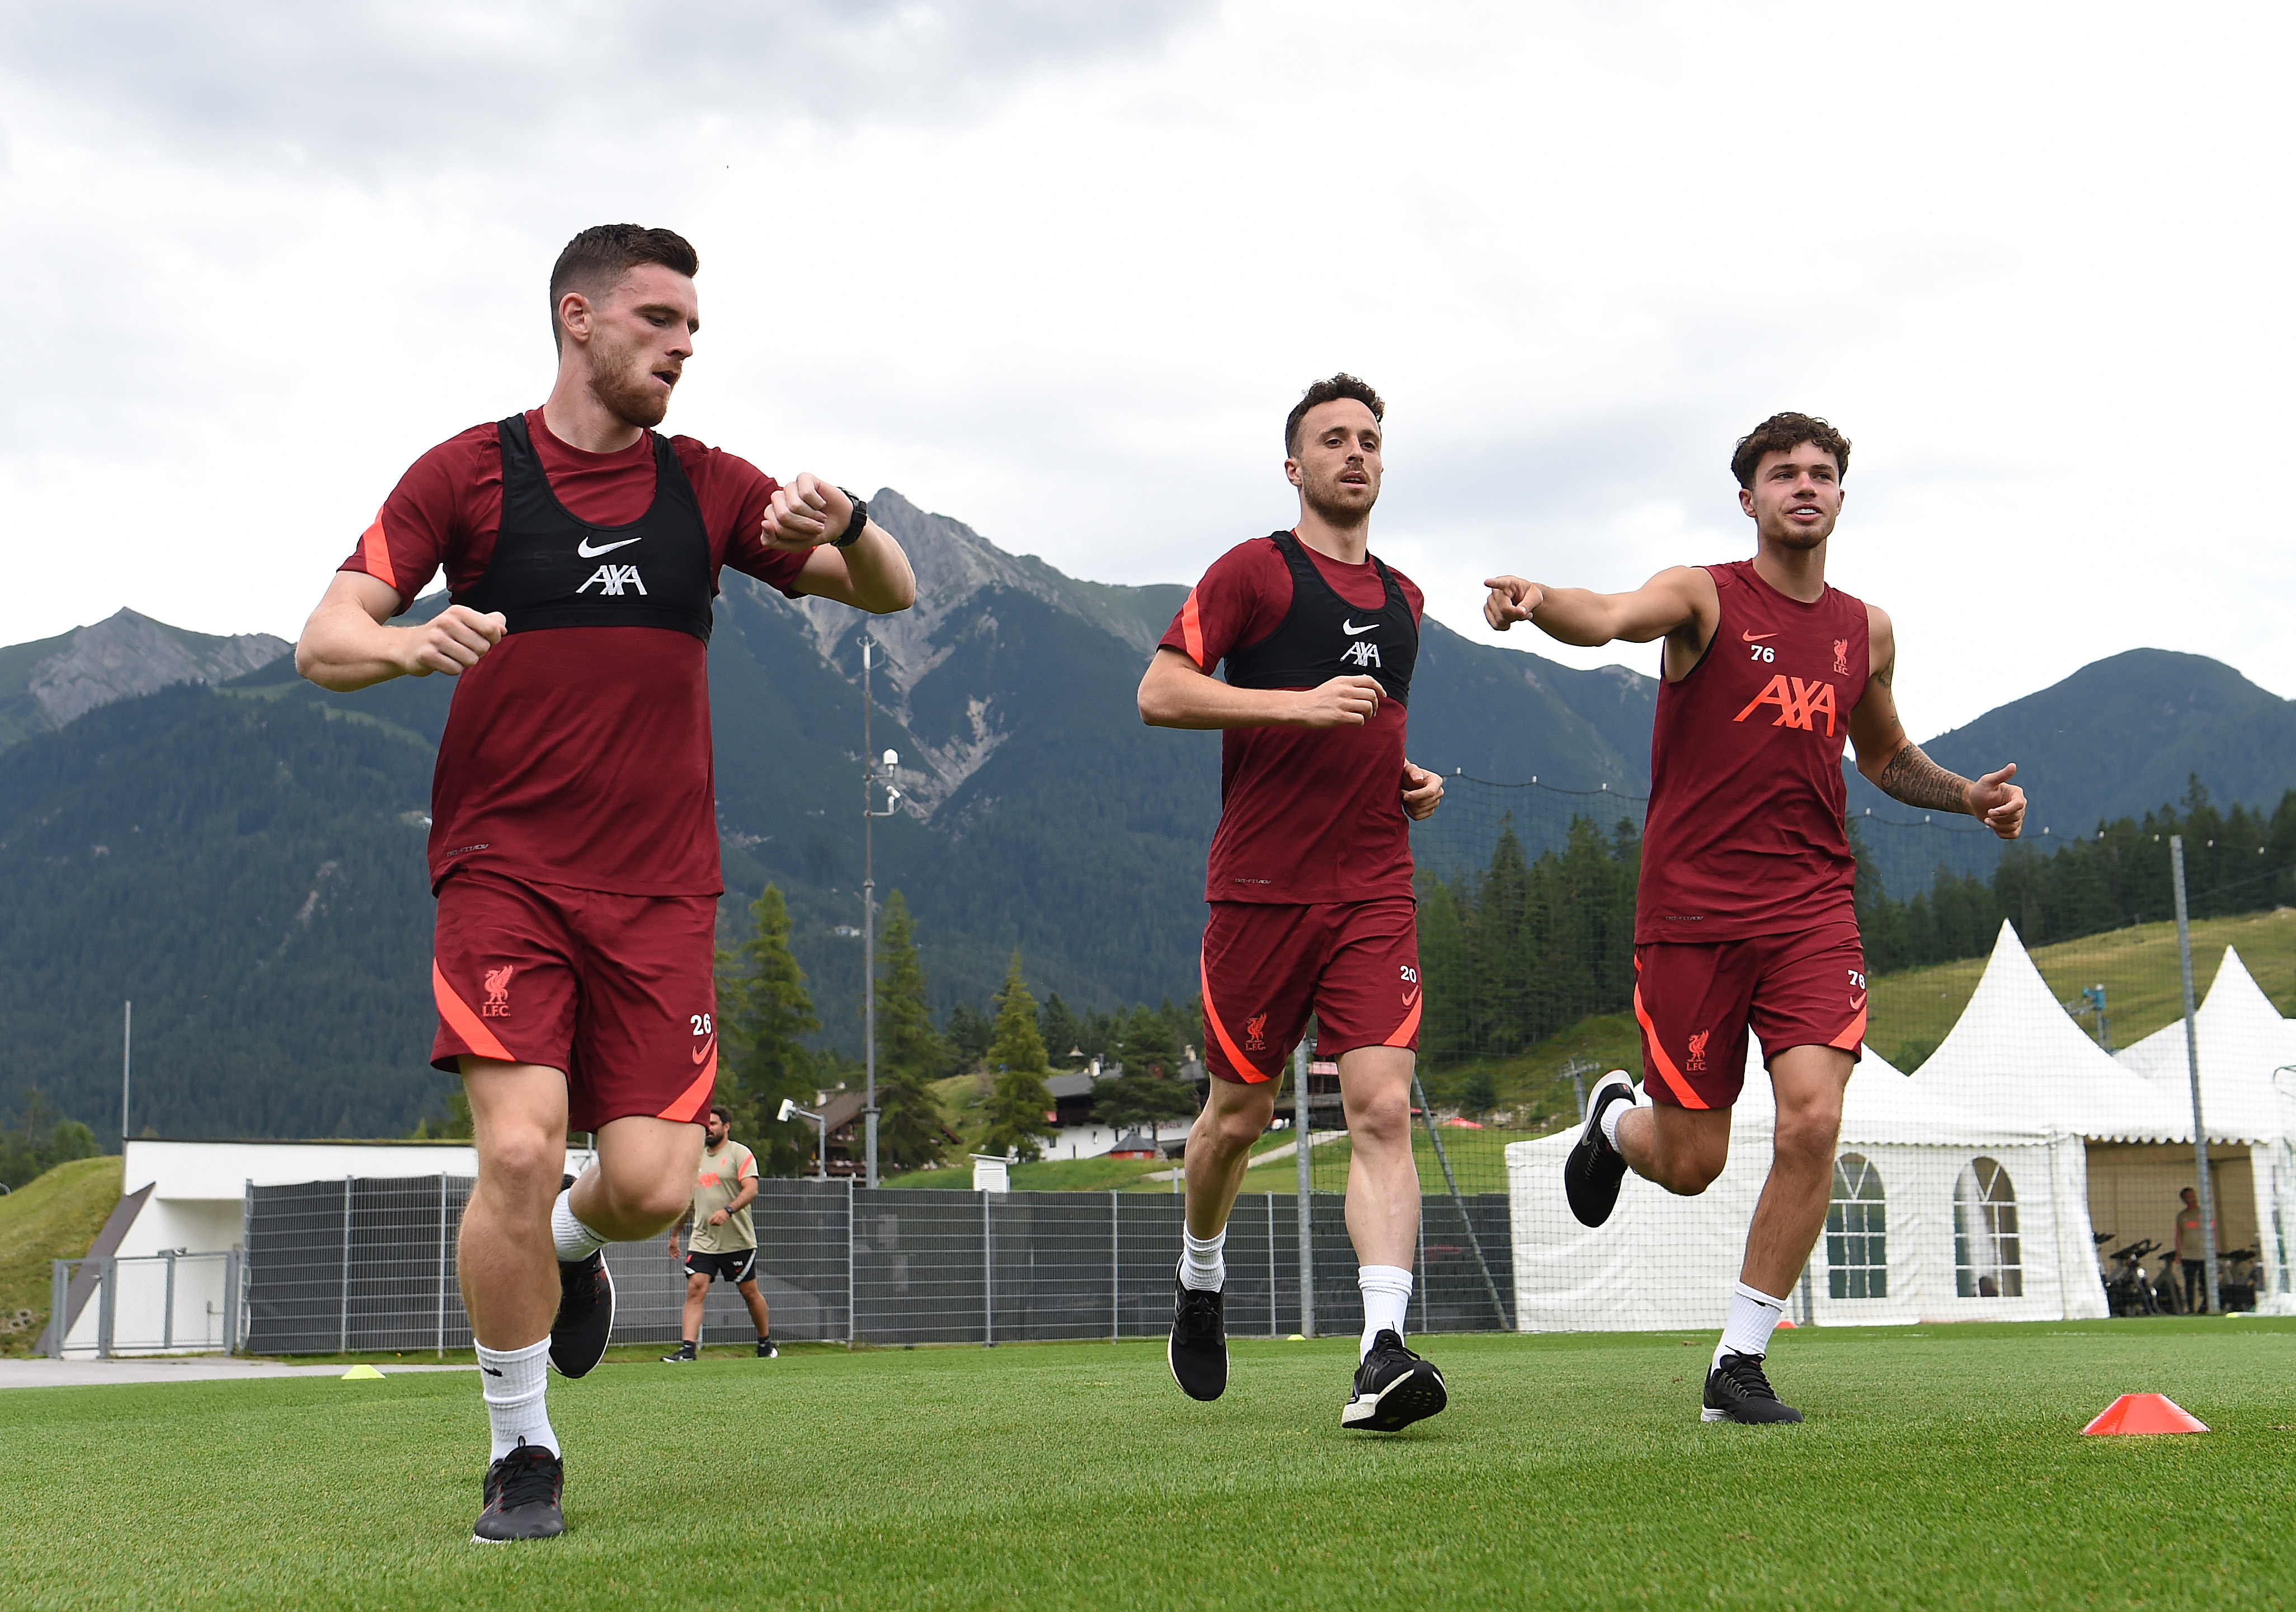 Andy Robertson, Diogo Jota and Neco Williams of Liverpool during a training session on July 26, 2021